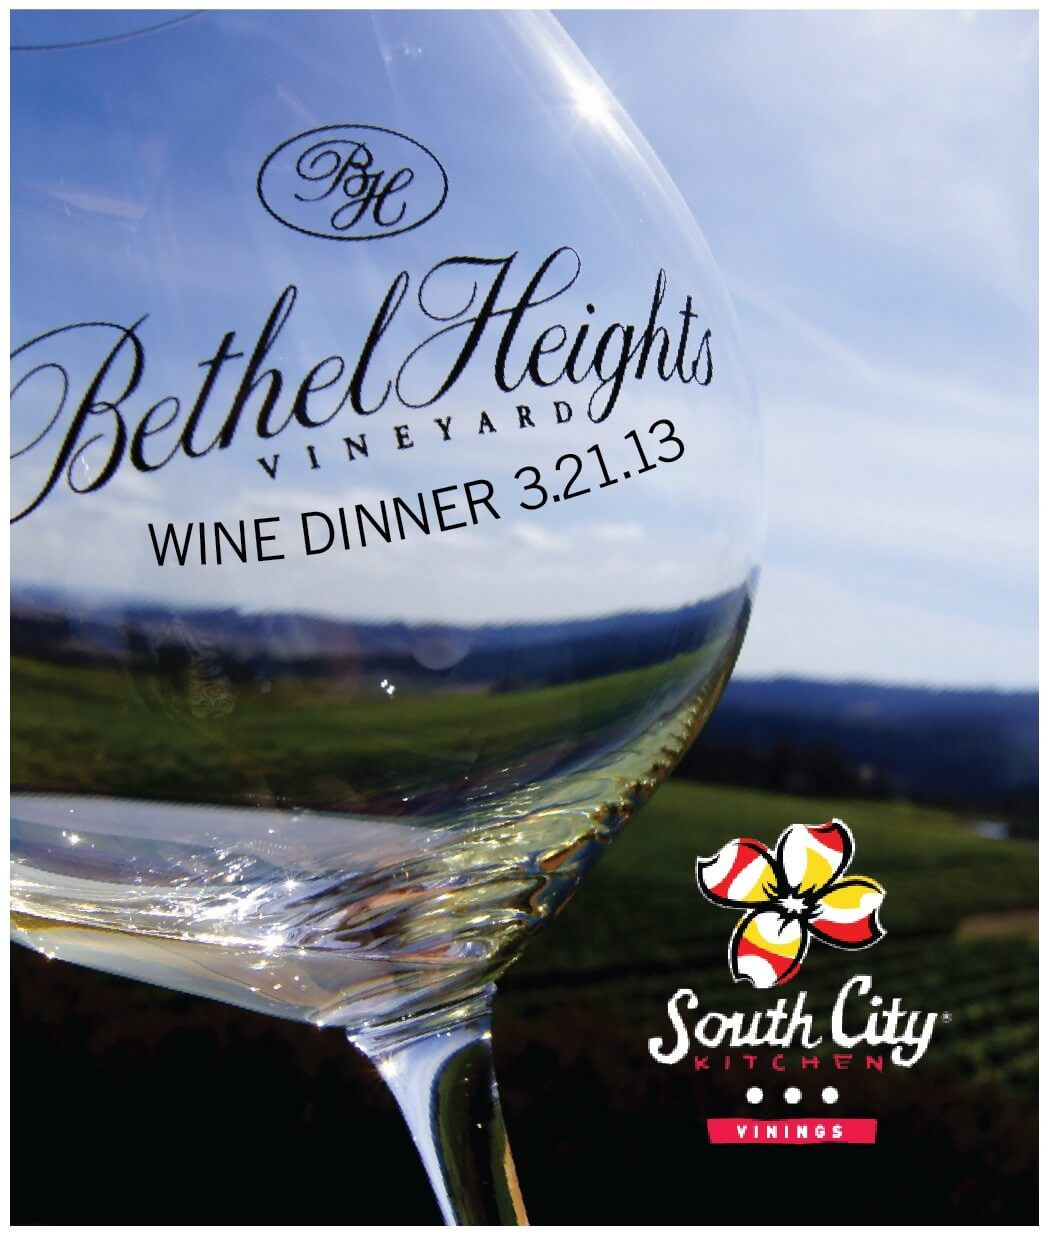 Bethel-Heights-Wine-Dinner